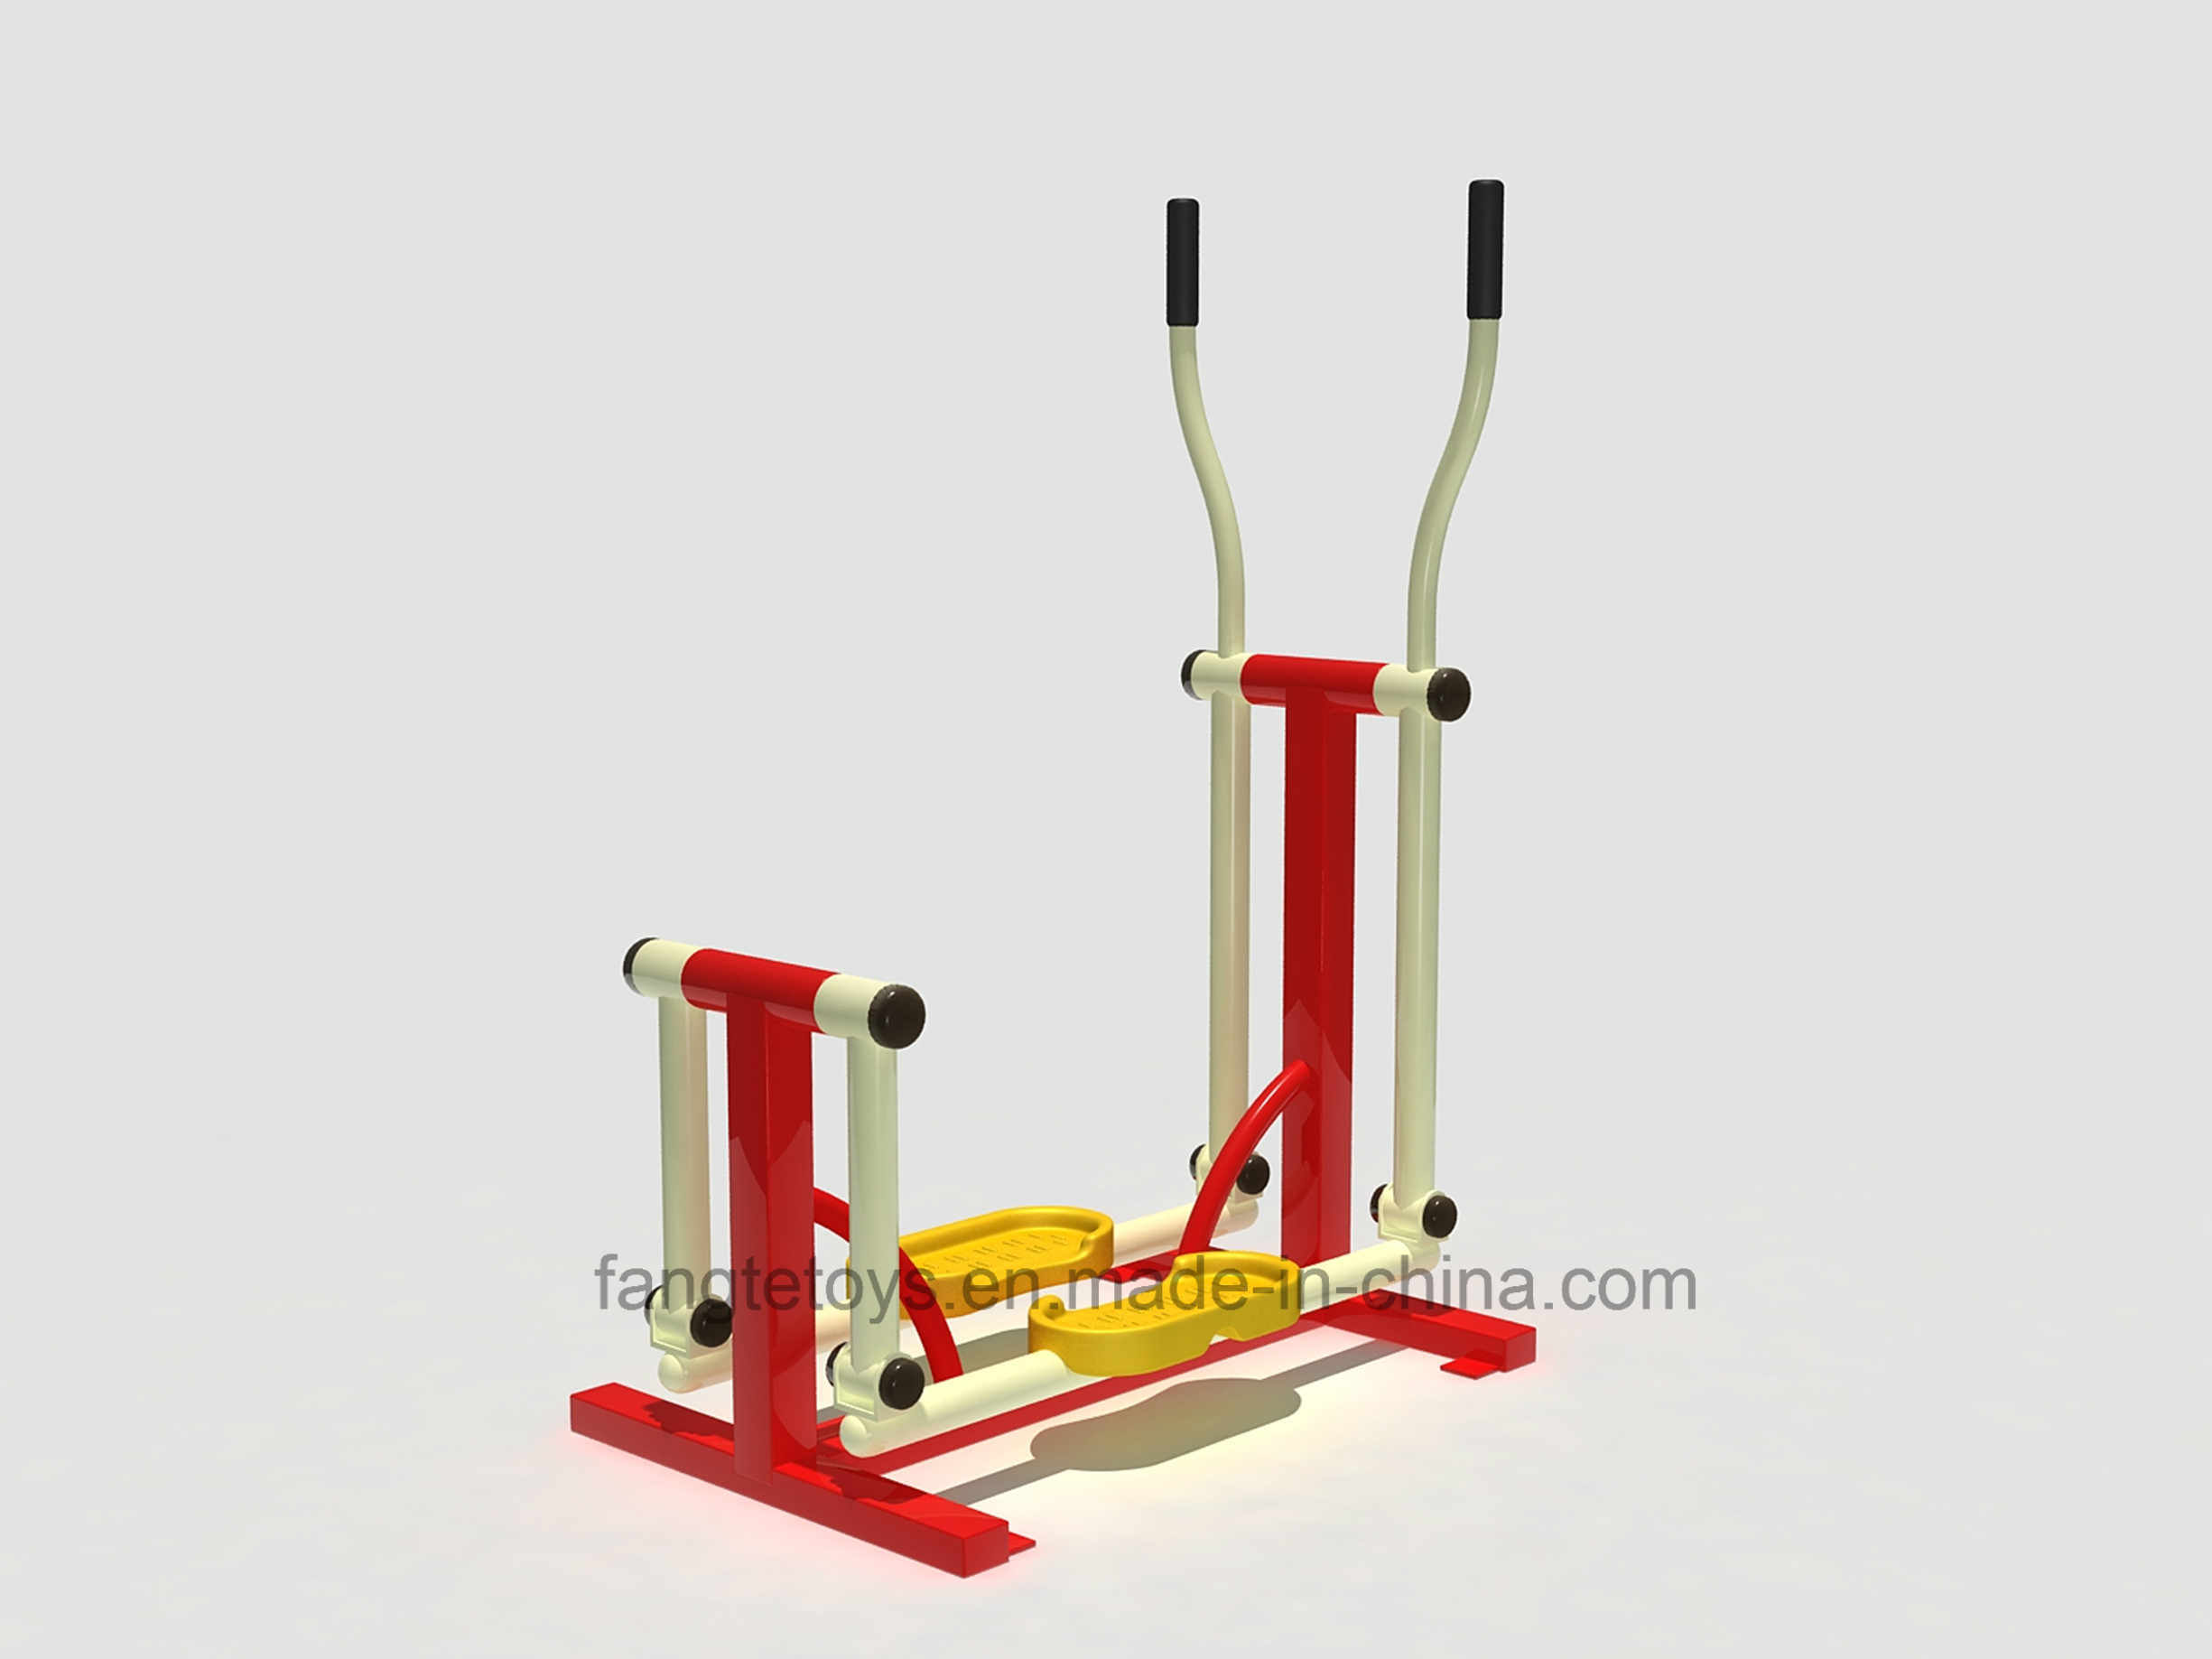 Outdoor Fitness Equipment Air Slider FT-Of329